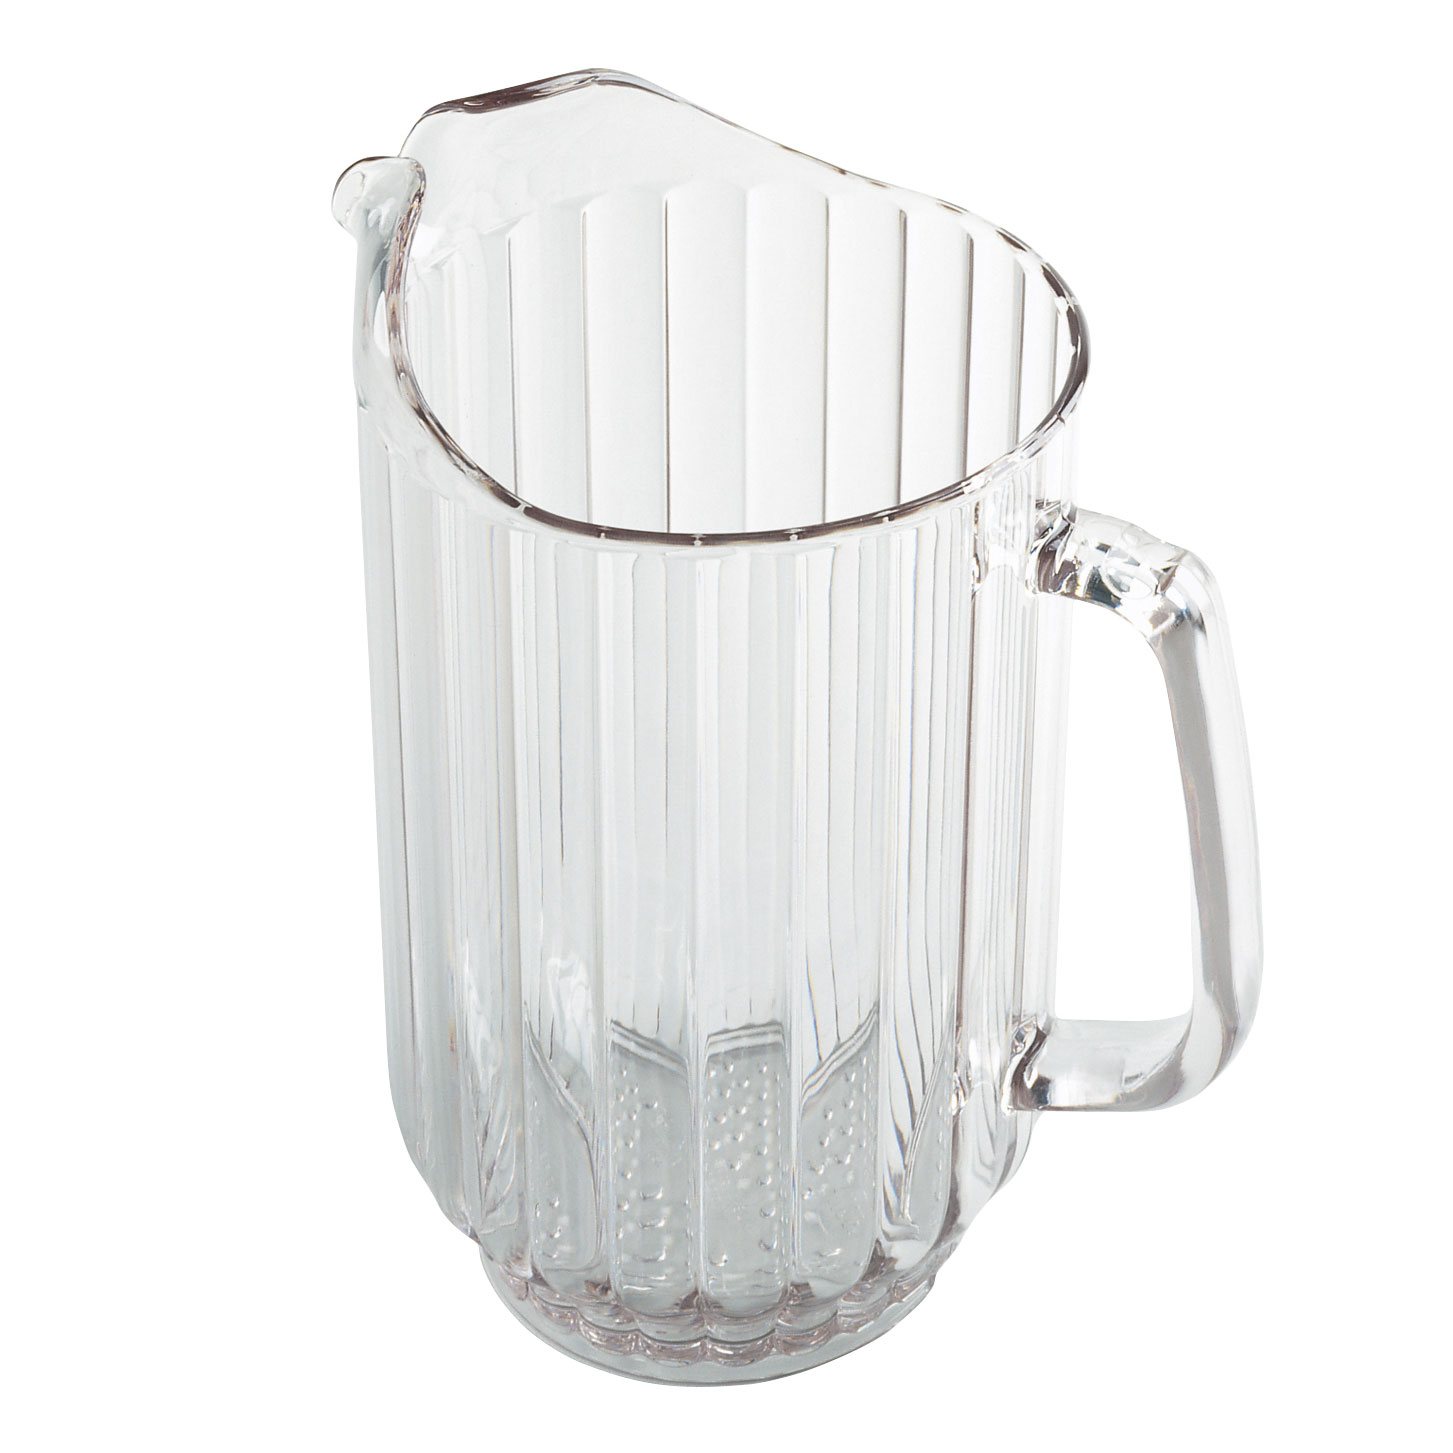 Cambro P600CW135 decanters/pitchers